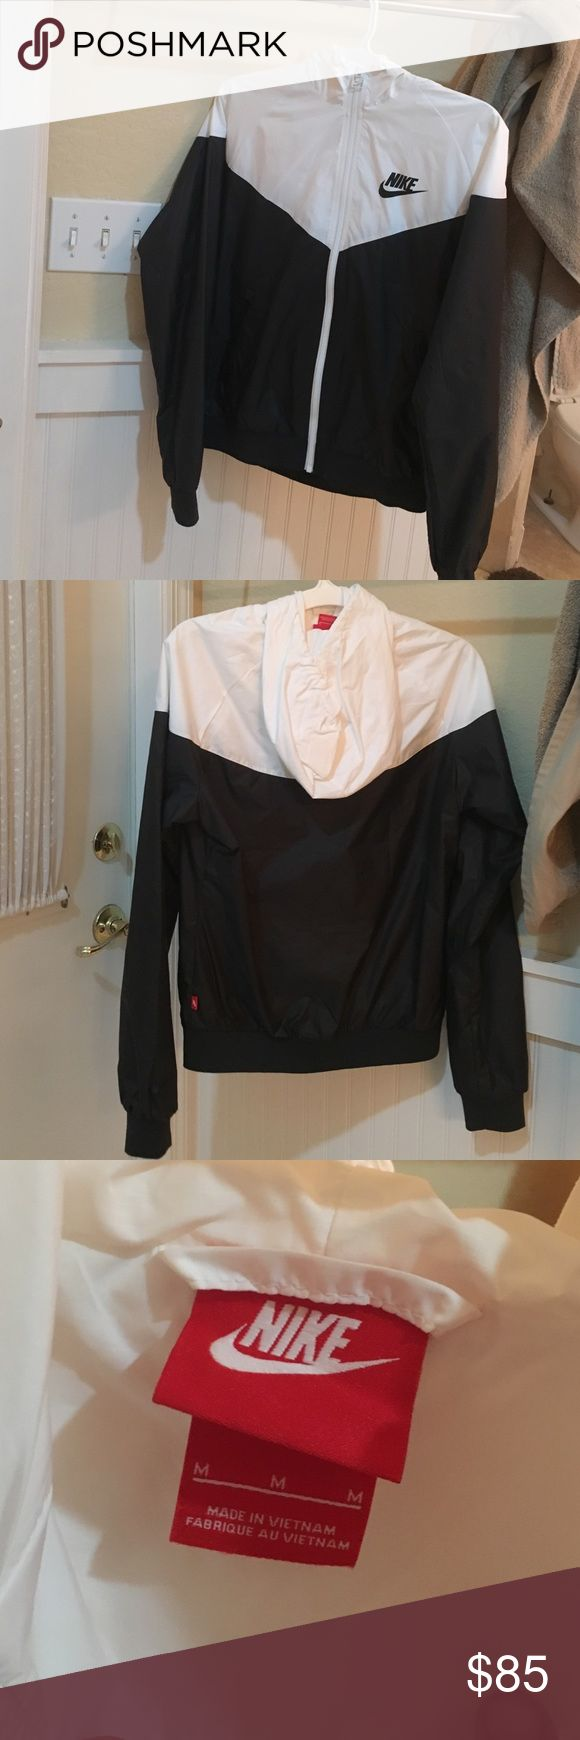 Nike Windrunner Black and white Nike windrunner worn only once. In brand new condition. Never find myself reaching for it. Size M but fits like Sm Nike Jackets & Coats